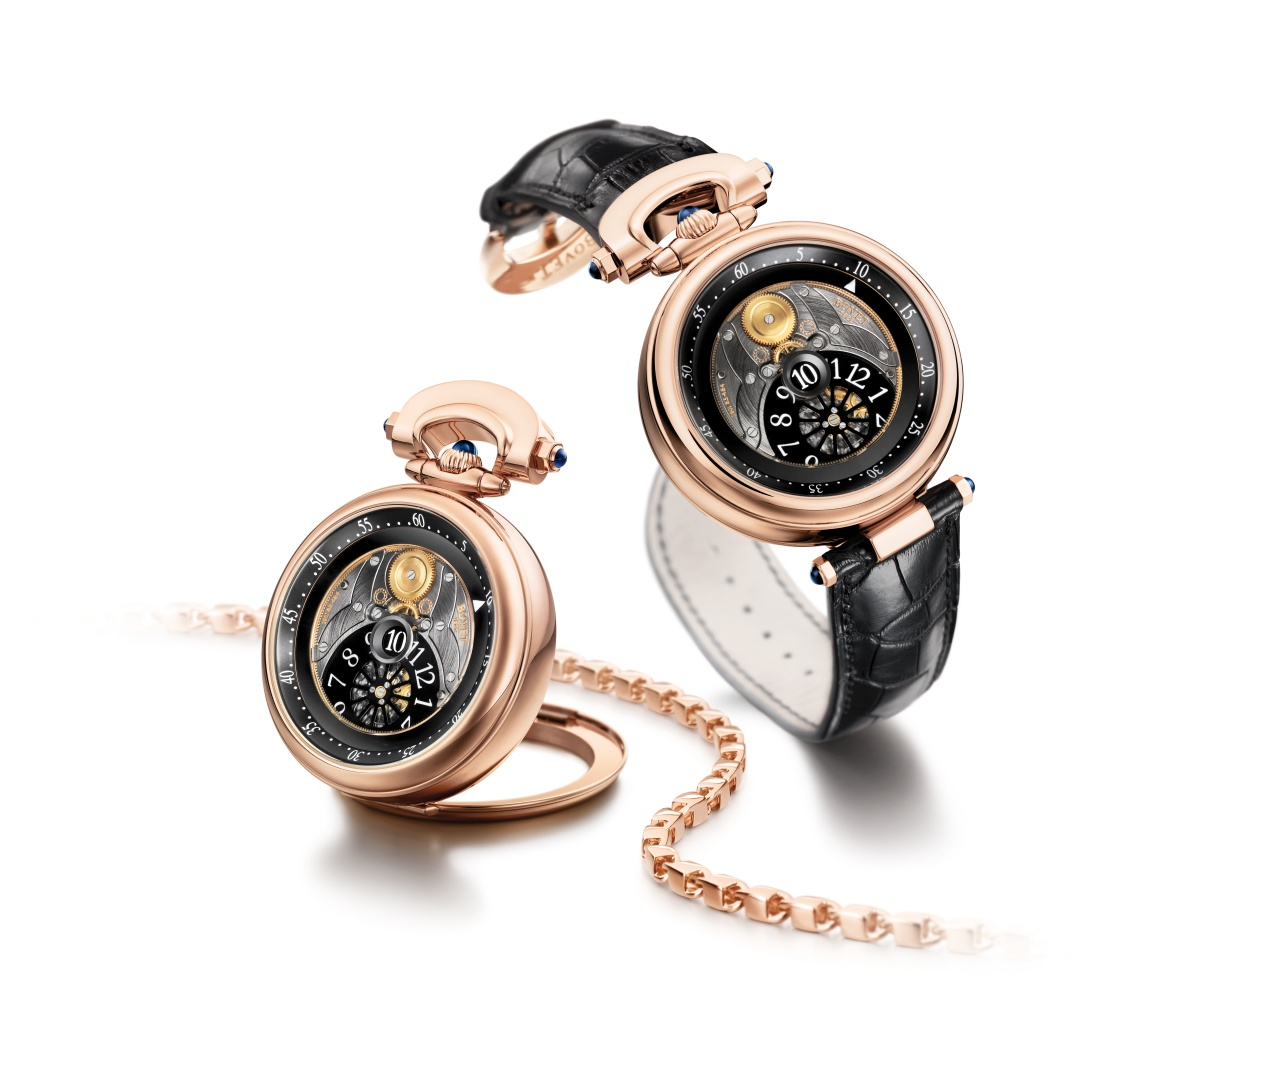 Bovet Watch   Amadeo Fleurier Complications   Ref. Nr.  AFHS003    Call 312-944-3100  | For Availability